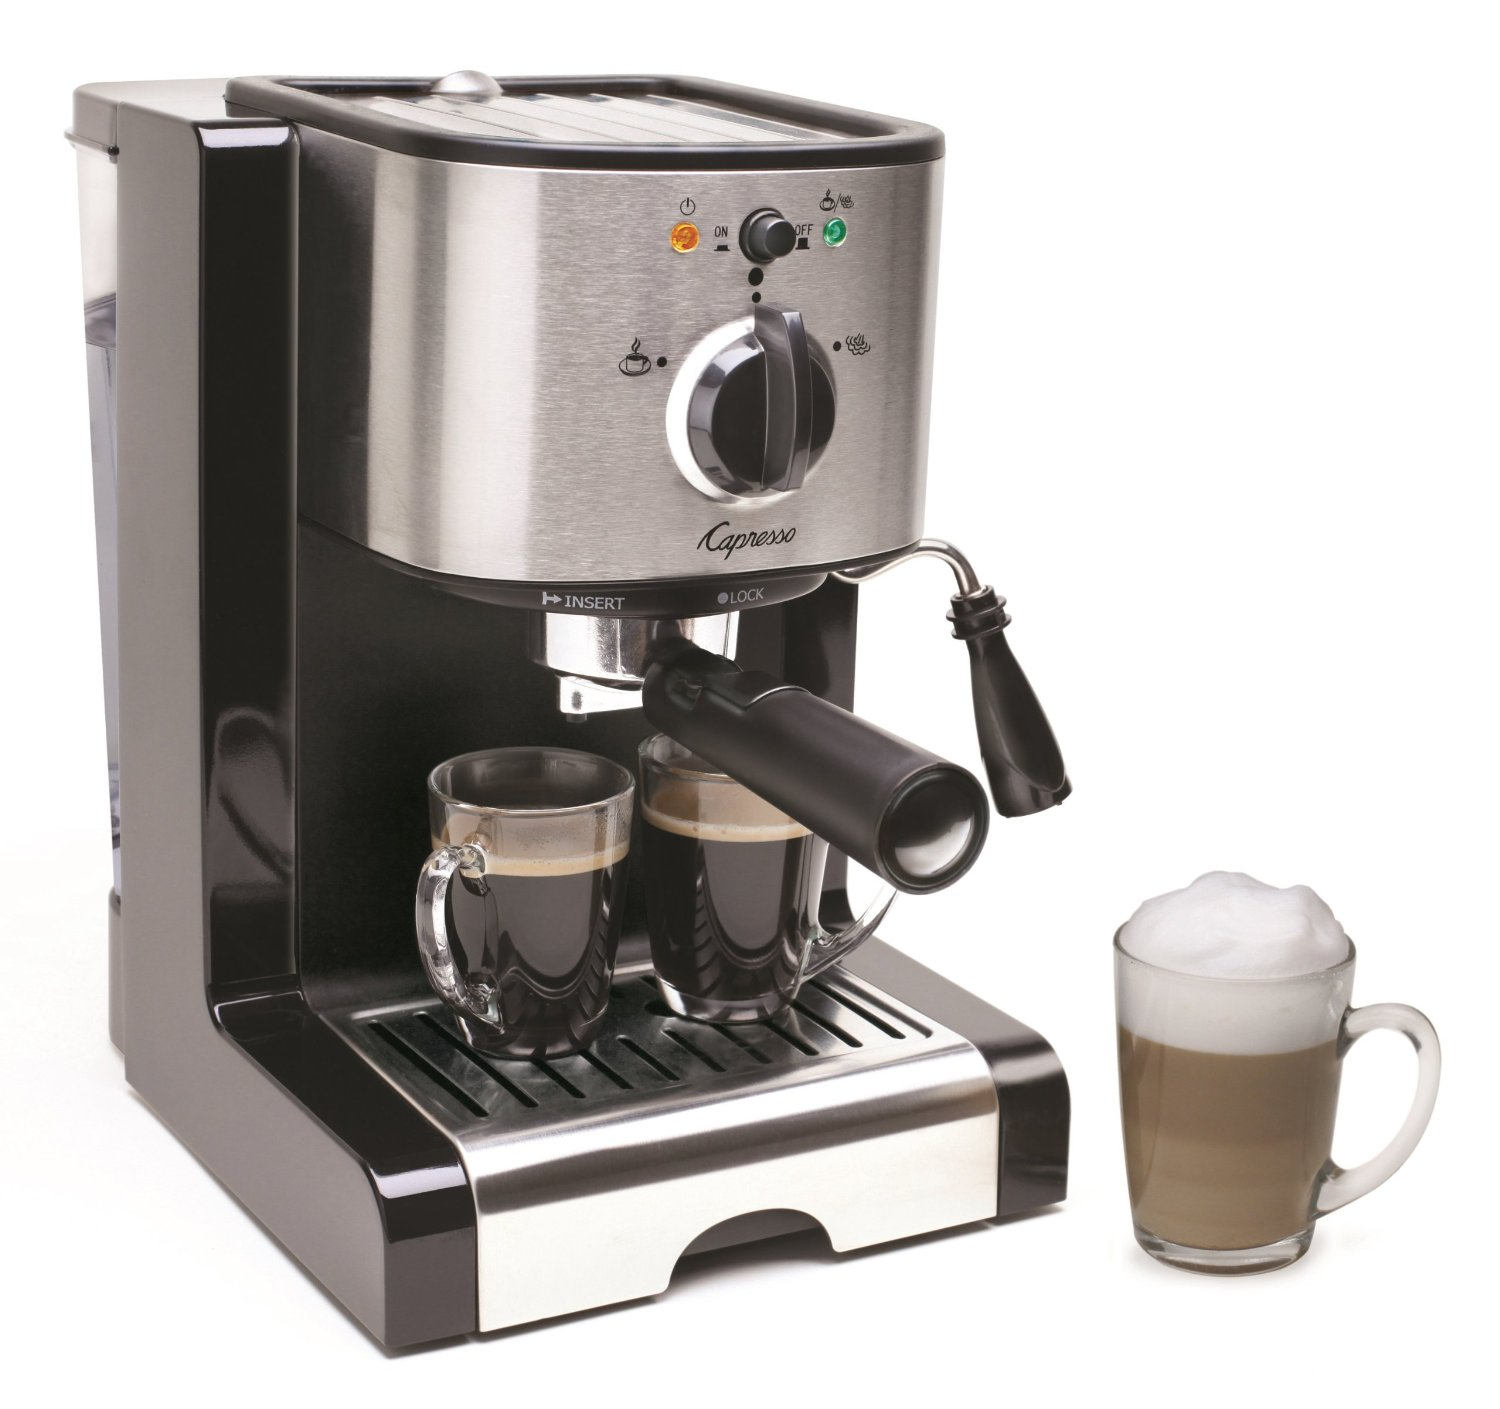 Best Coffee Maker One Cup : Best Single Cup Coffee Maker - Cappuccinostar